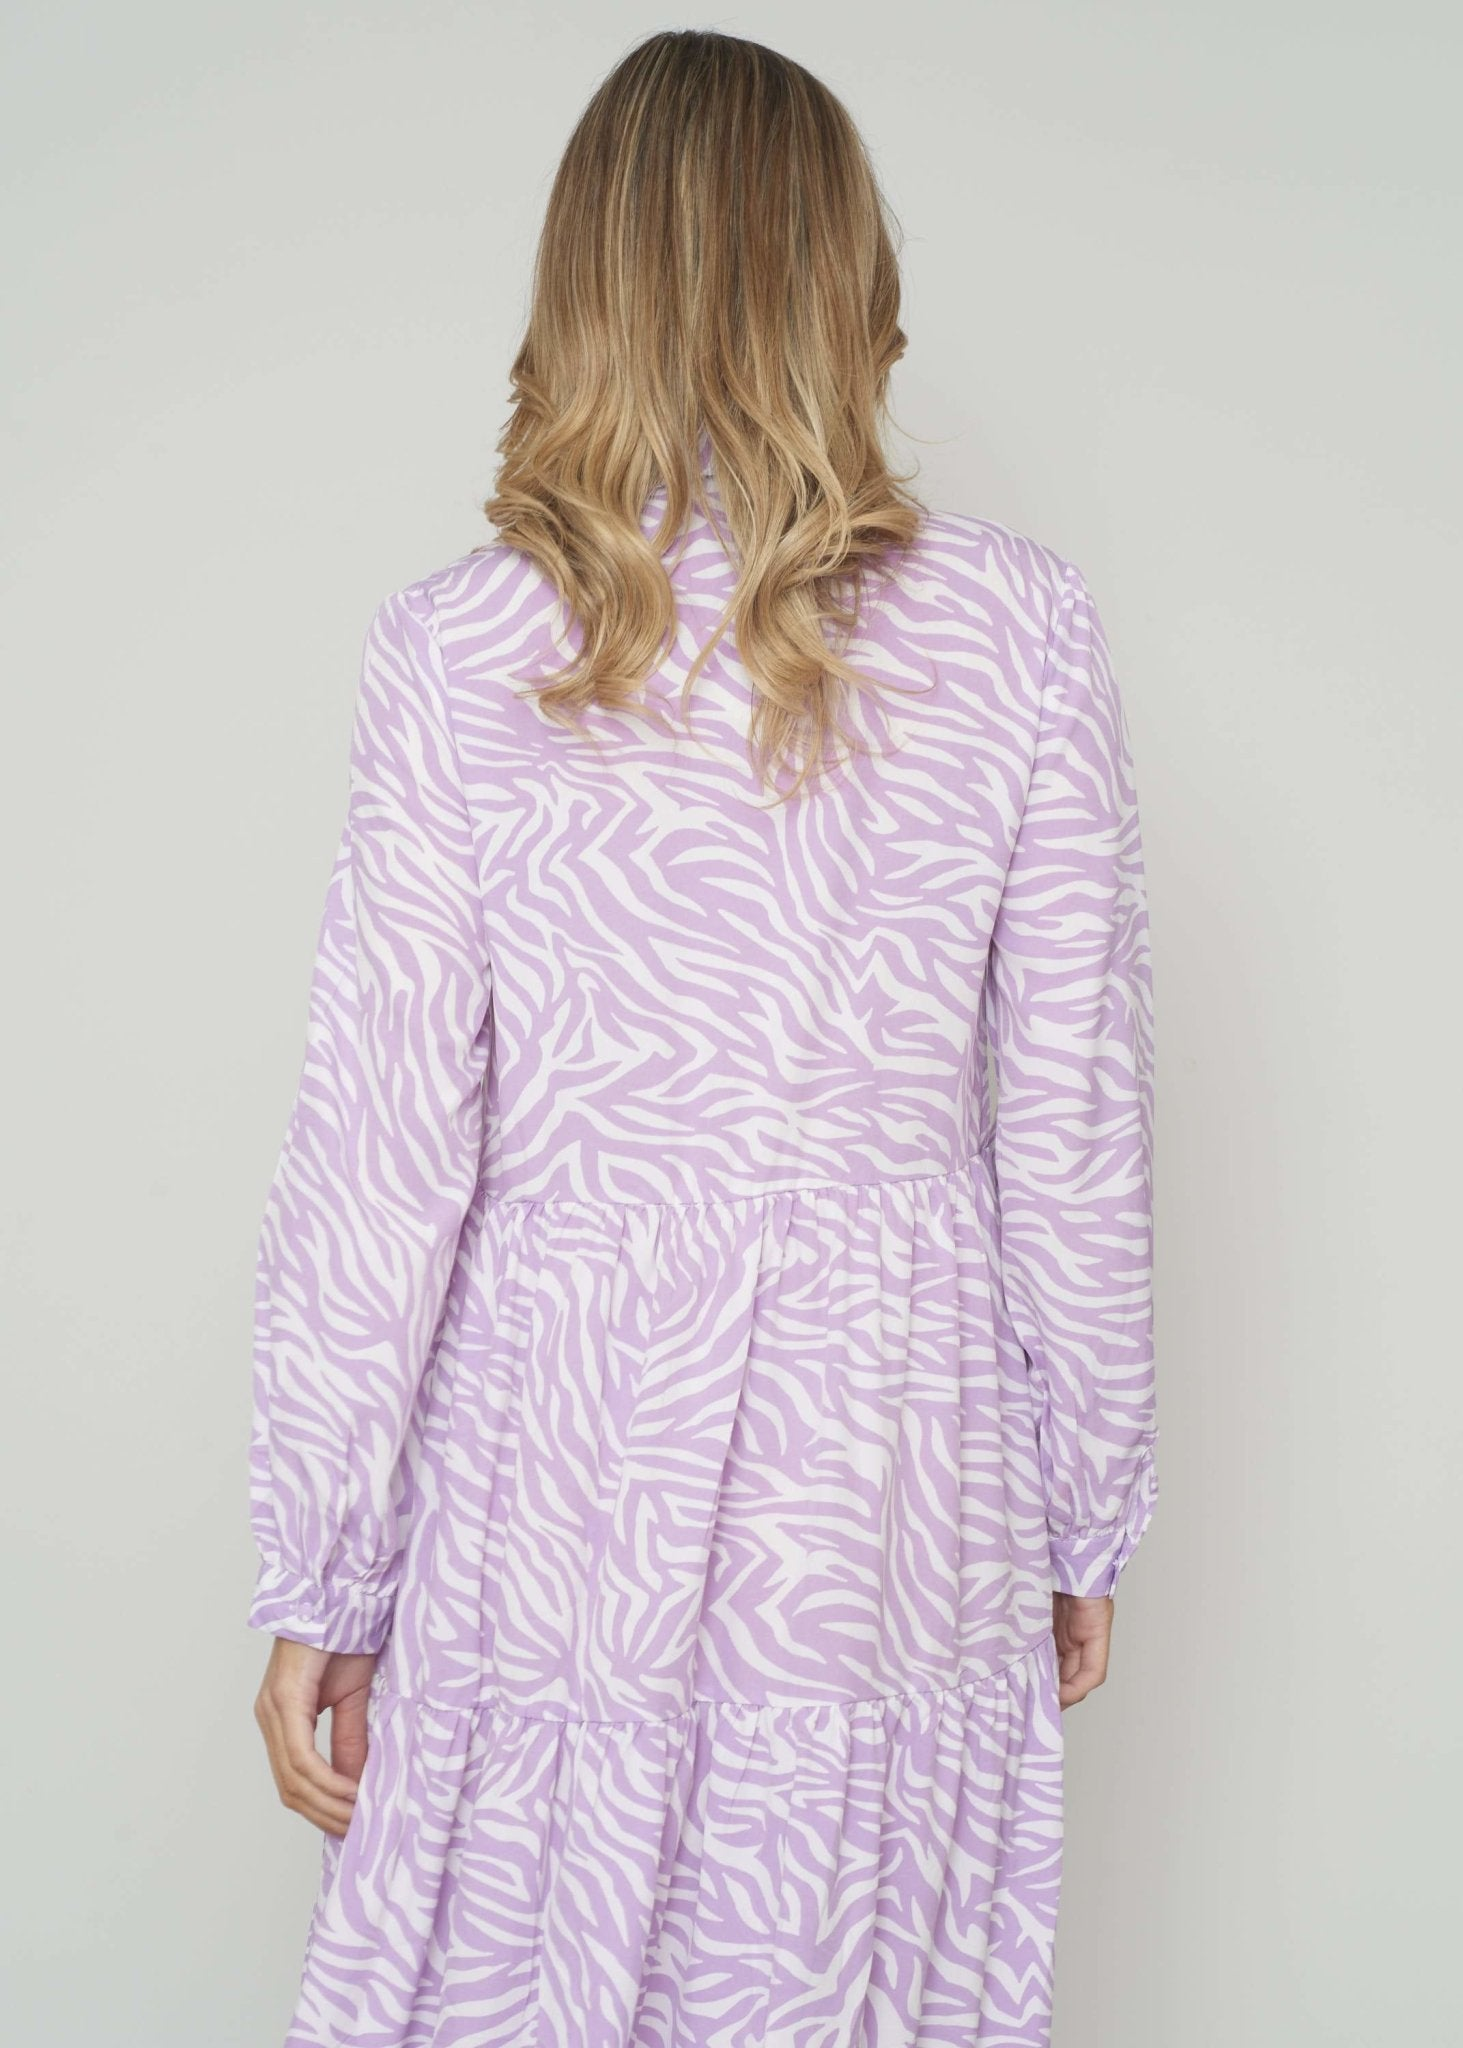 Elsa Zebra Print Dress In Lilac - The Walk in Wardrobe